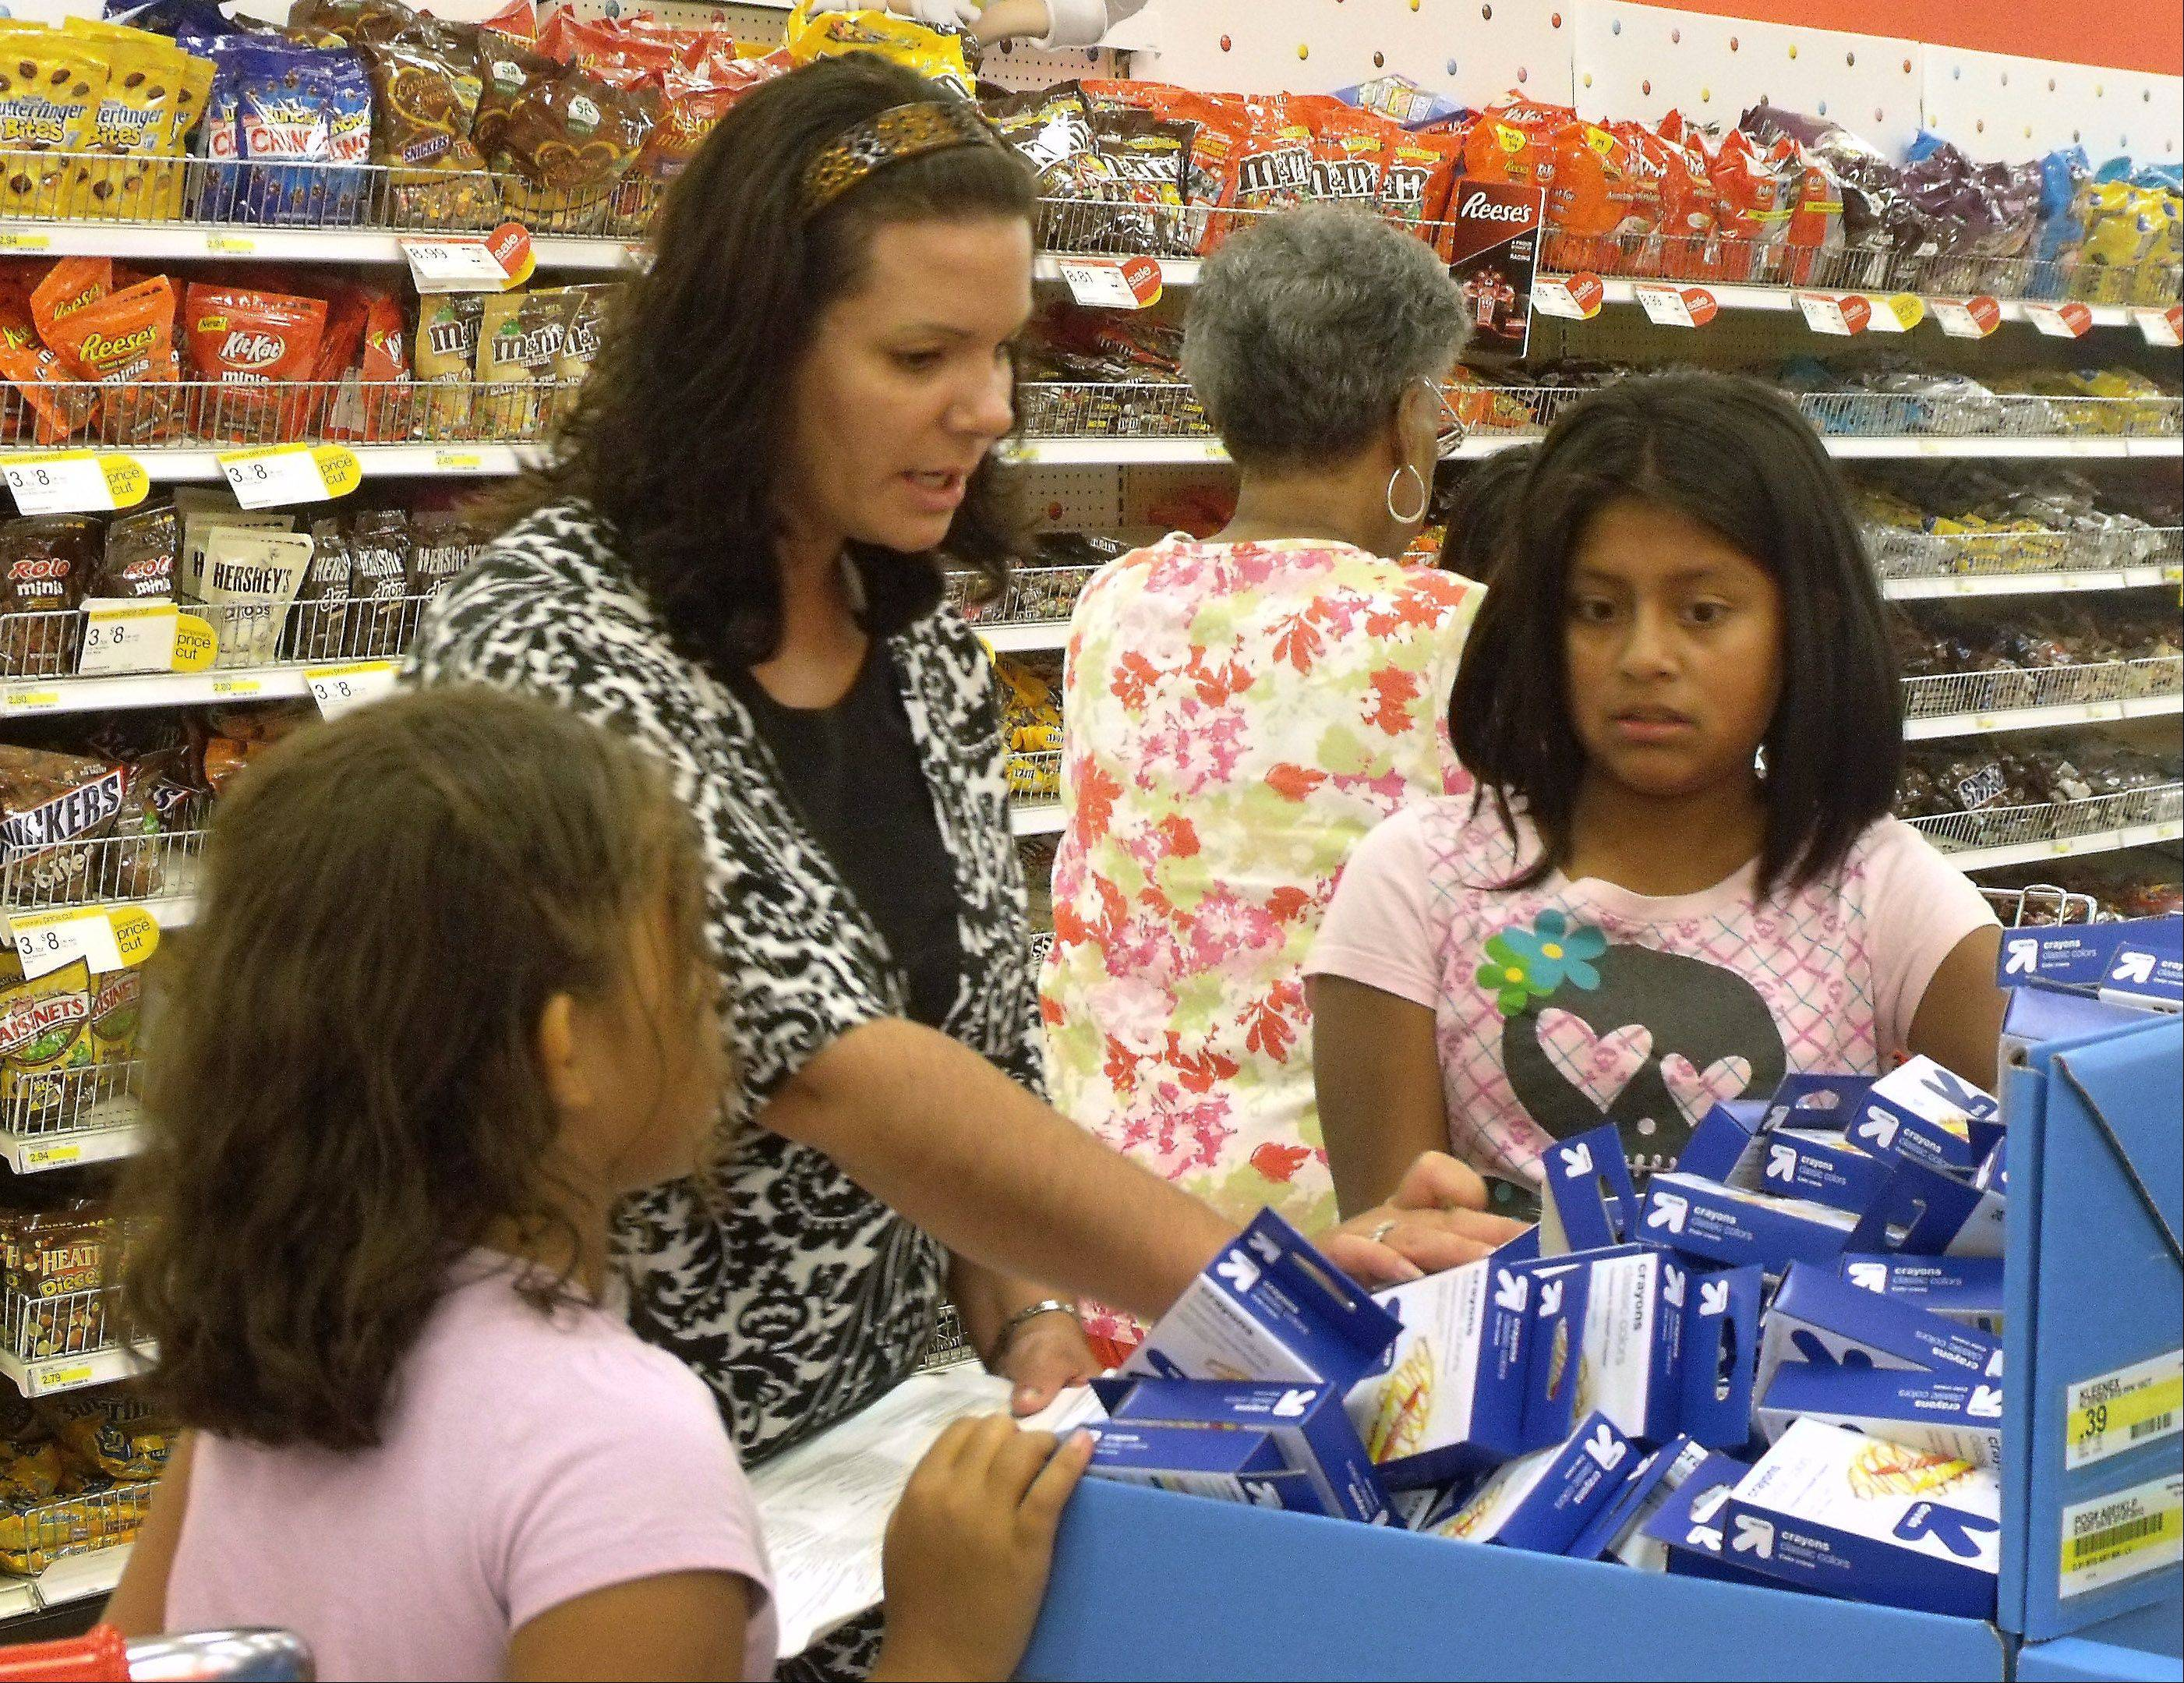 Salvation Army chaperon Jessica Ellingsworth helps Amanda Rinehart, 8, left, and Jazmin Farias, 9, decide which back-to-school supplies to buy Tuesday during a shopping spree at Target in Waukegan. Ten students received gift cards through a program to help needy children get ready for the classroom.